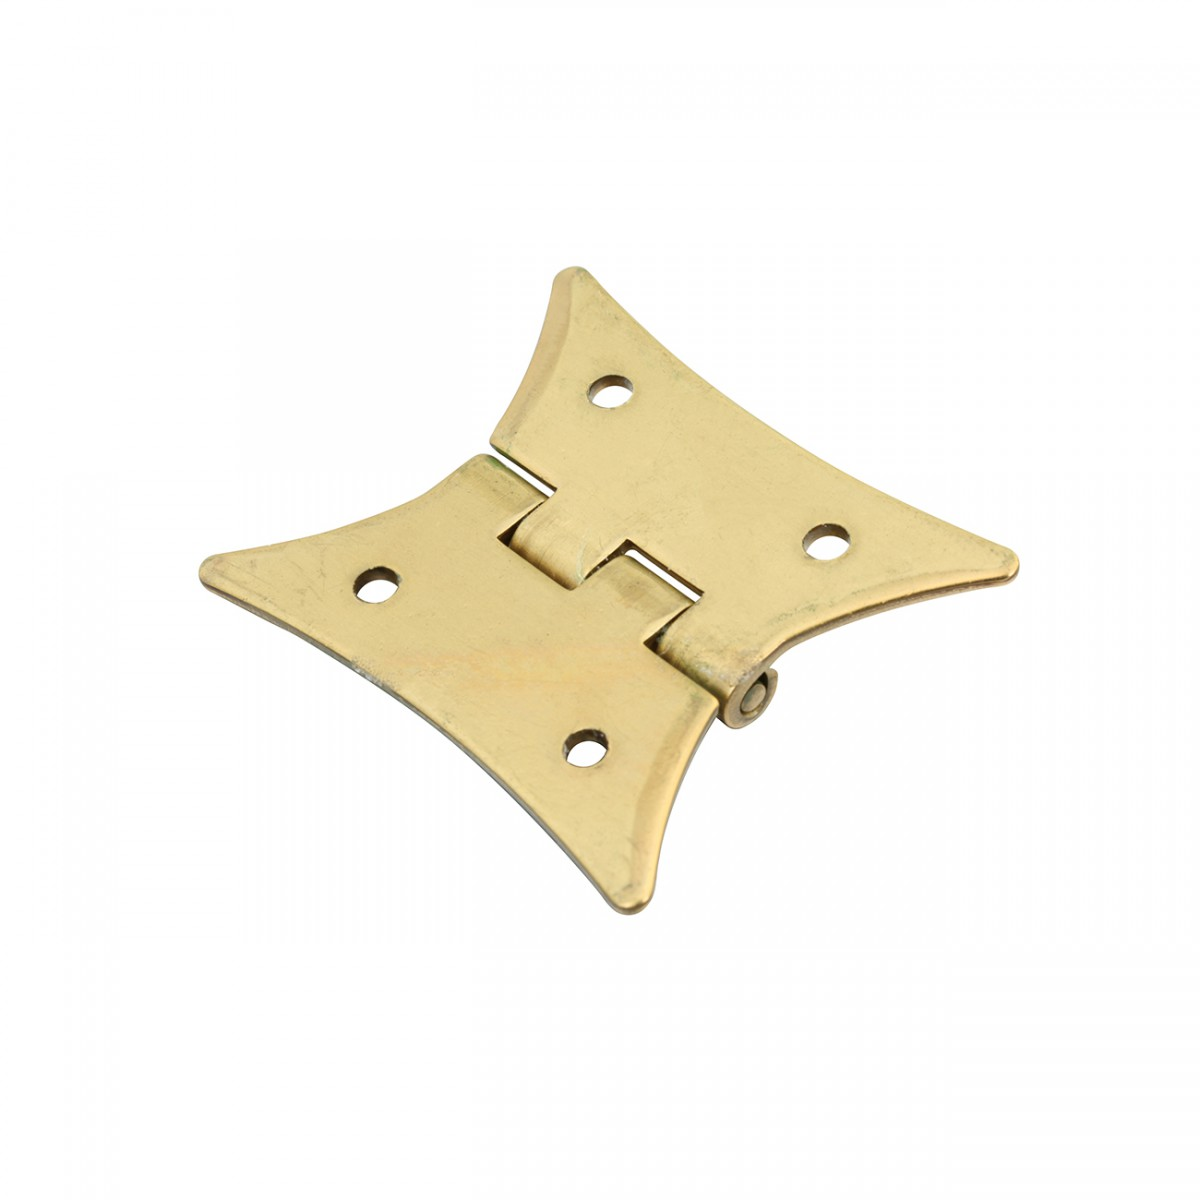 4 Cabinet Hinges Bright Solid Brass Hinge 2 38 x 2 Set of 4 Door Hinges Door Hinge Solid Brass Hinge